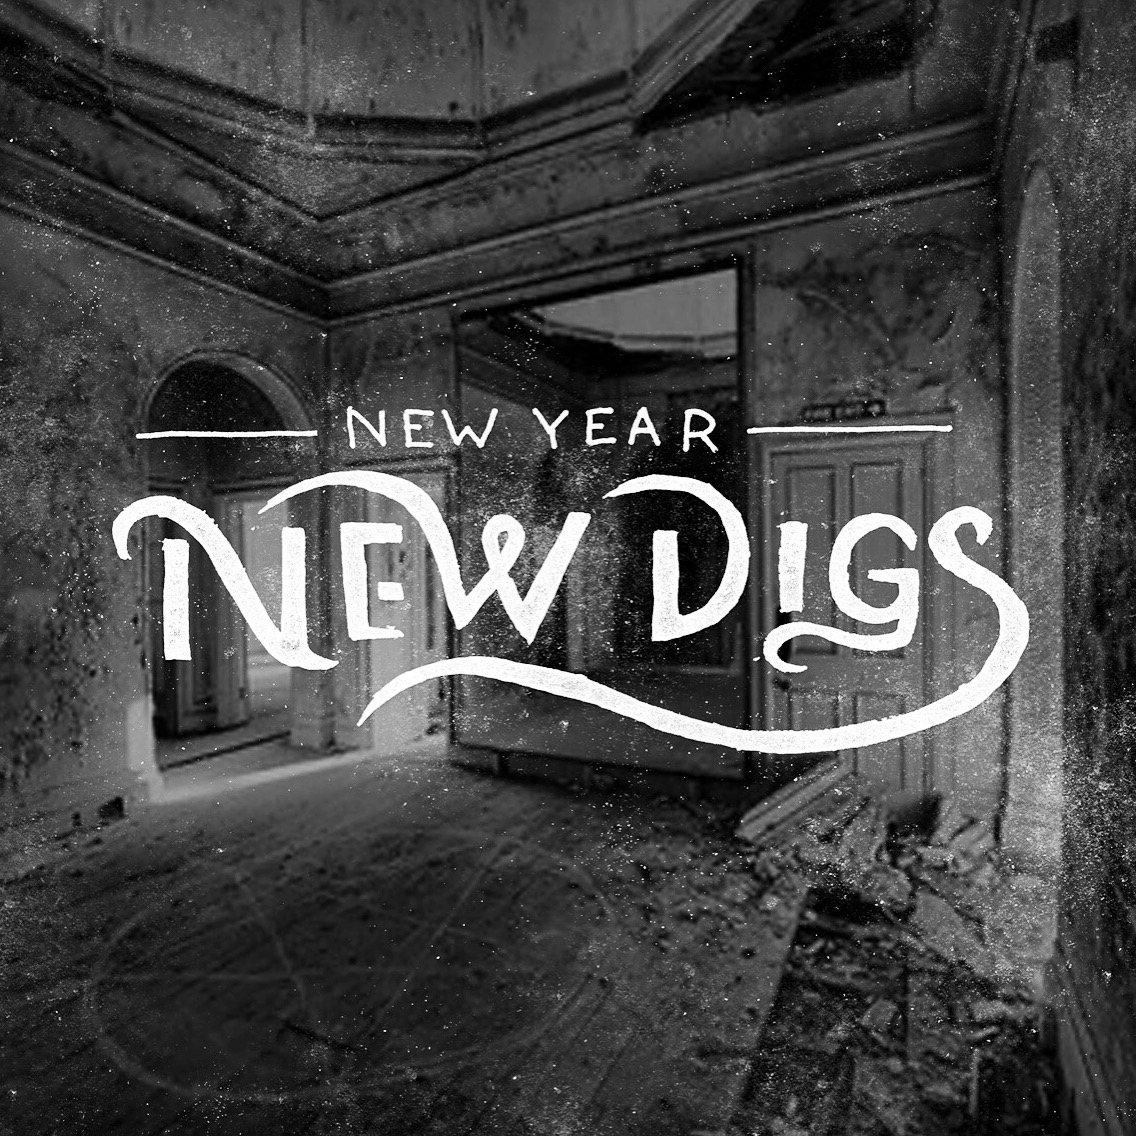 Hand Lettering, New Years and New Digs